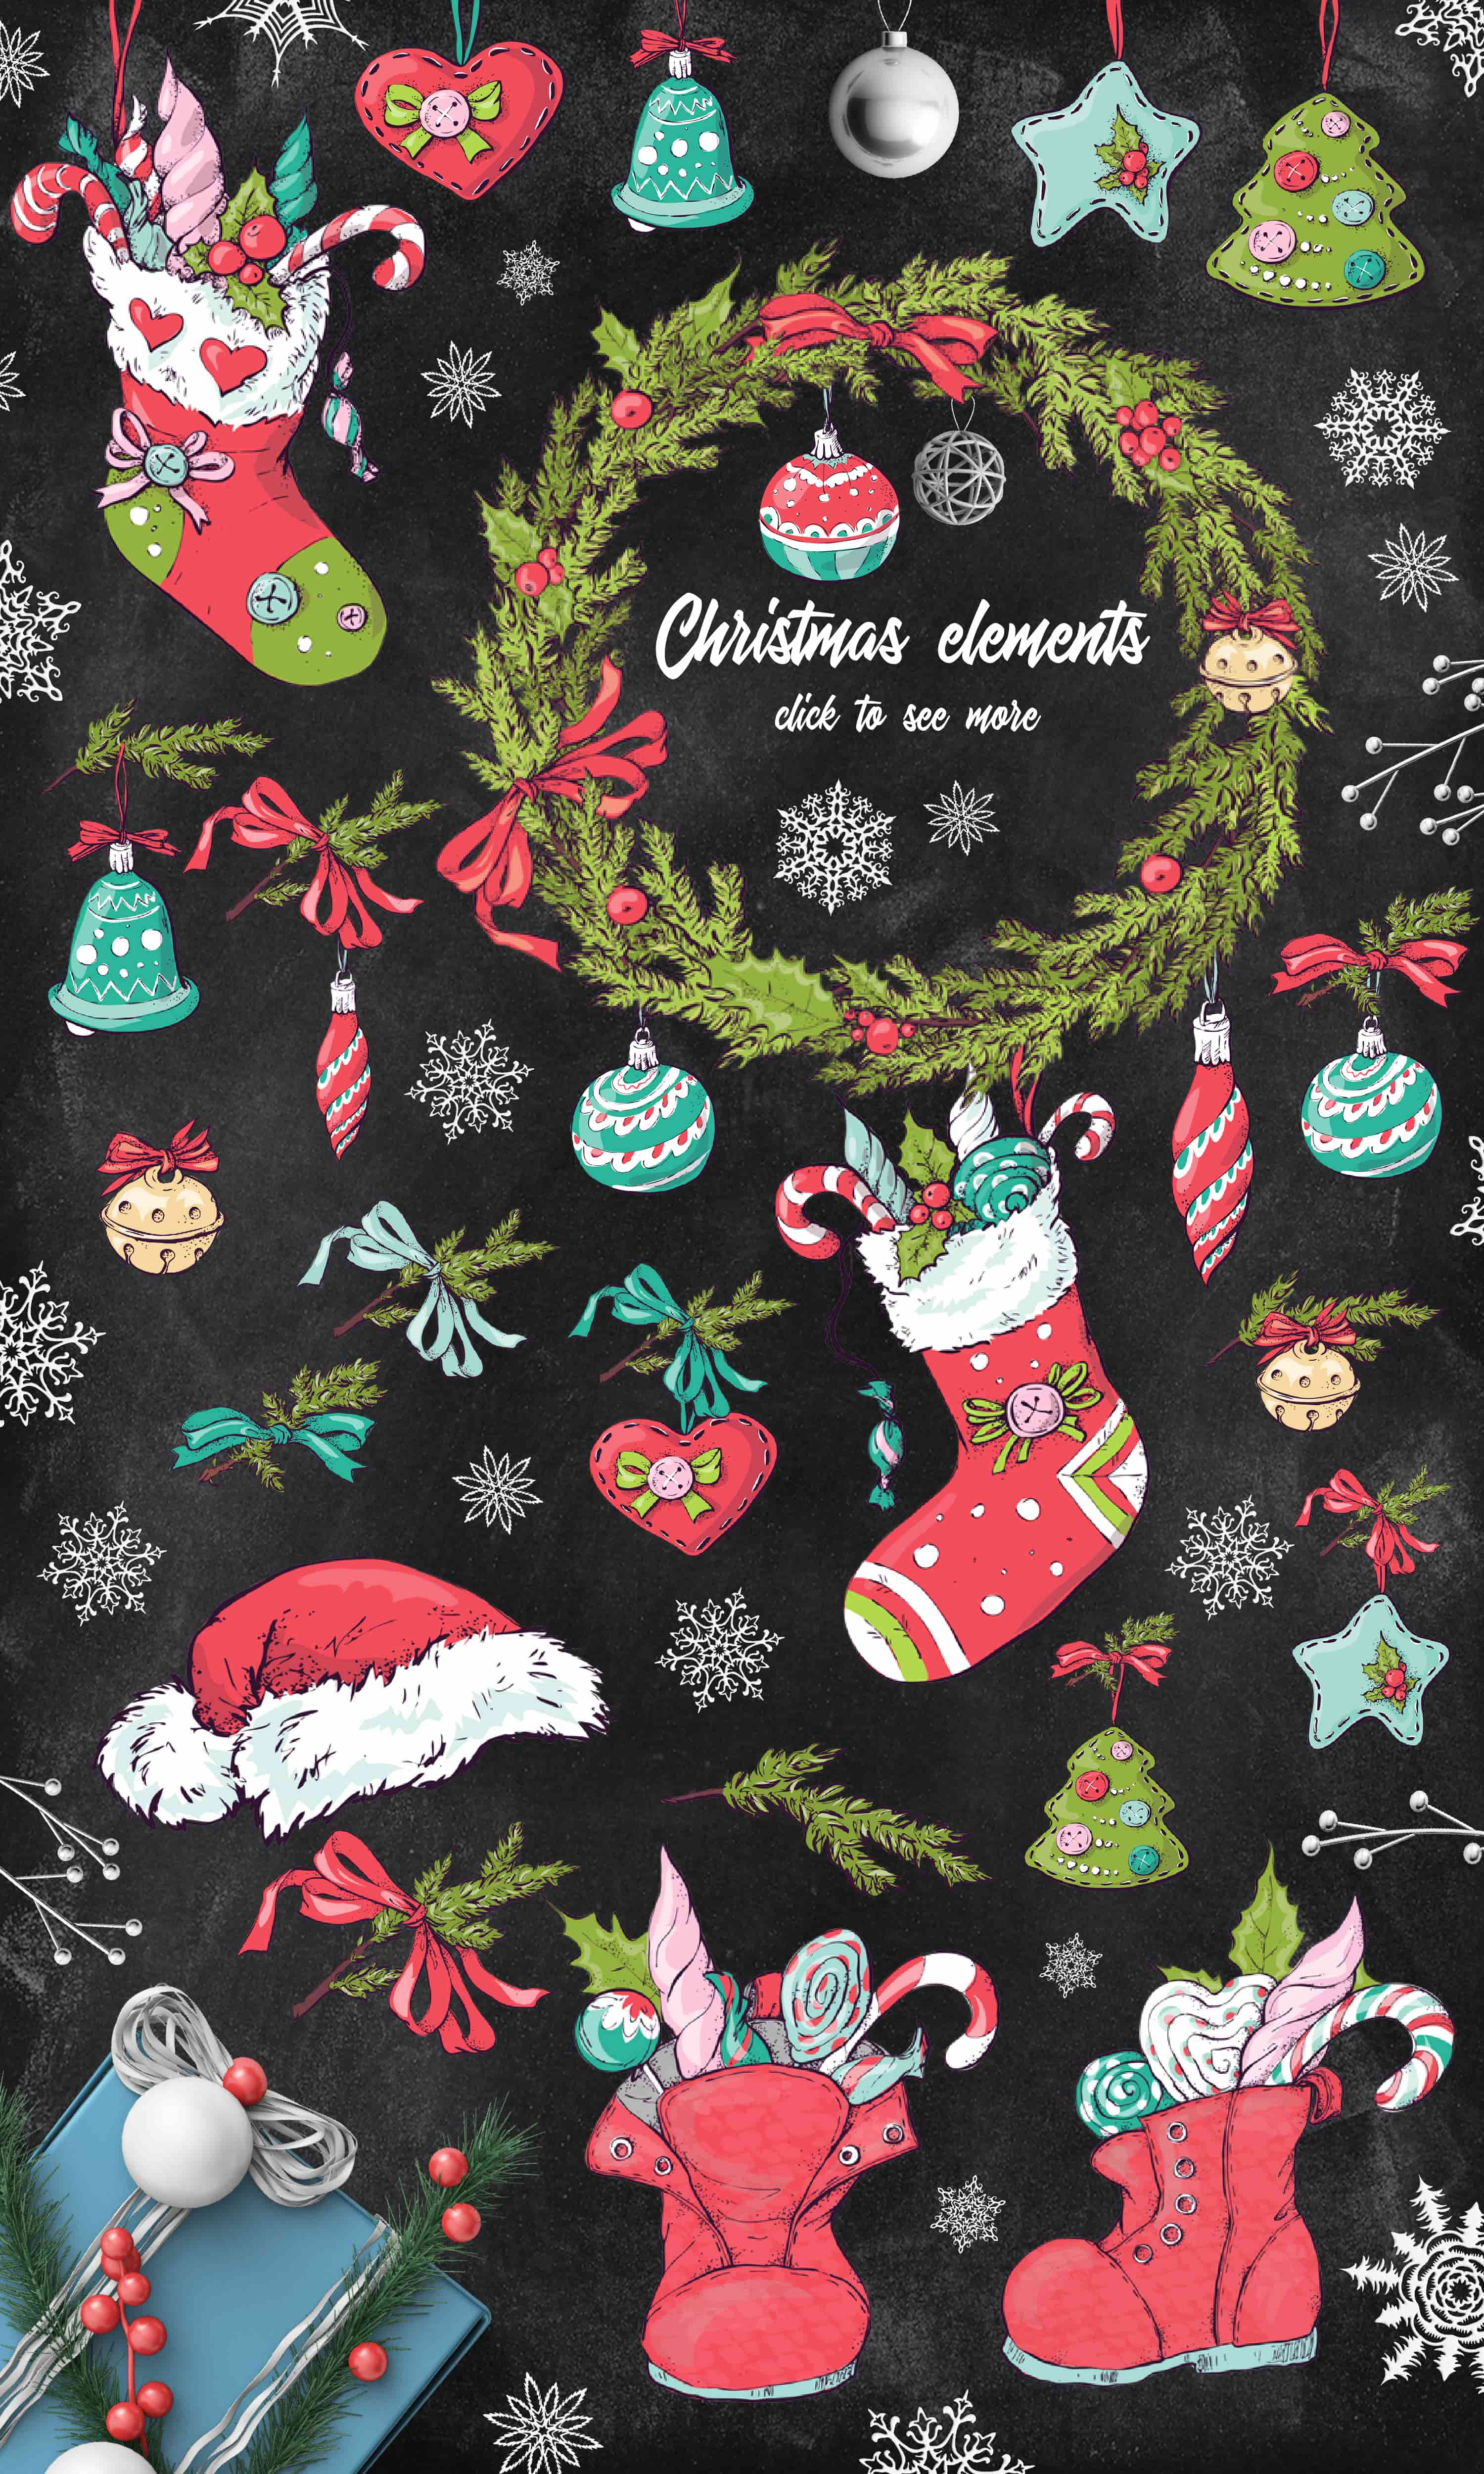 Merry Christmas Images: patterns, cards and items - 5 items min